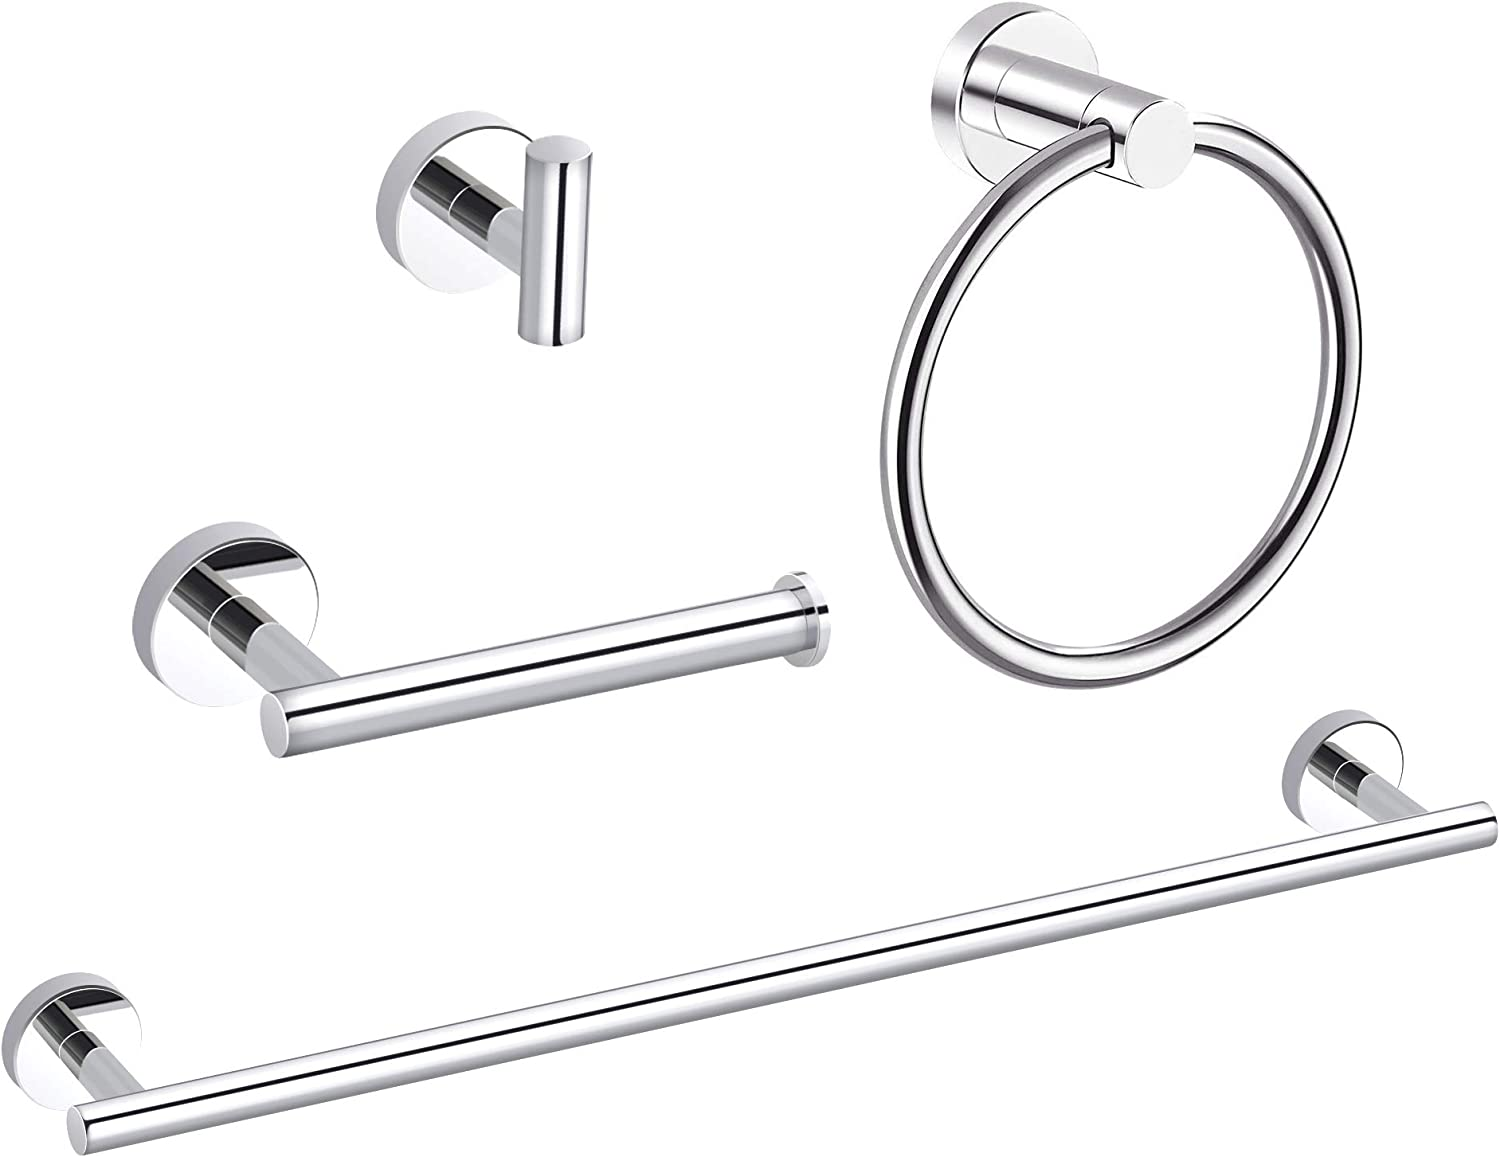 MARMOLUX ACC 12 Inches Hand Towel Holder Bathroom Hardware Chrome Towel Bar Towel Rack Towel Hanger Stainless Steel Wall Mount Bathroom Accessories Polished Chrome